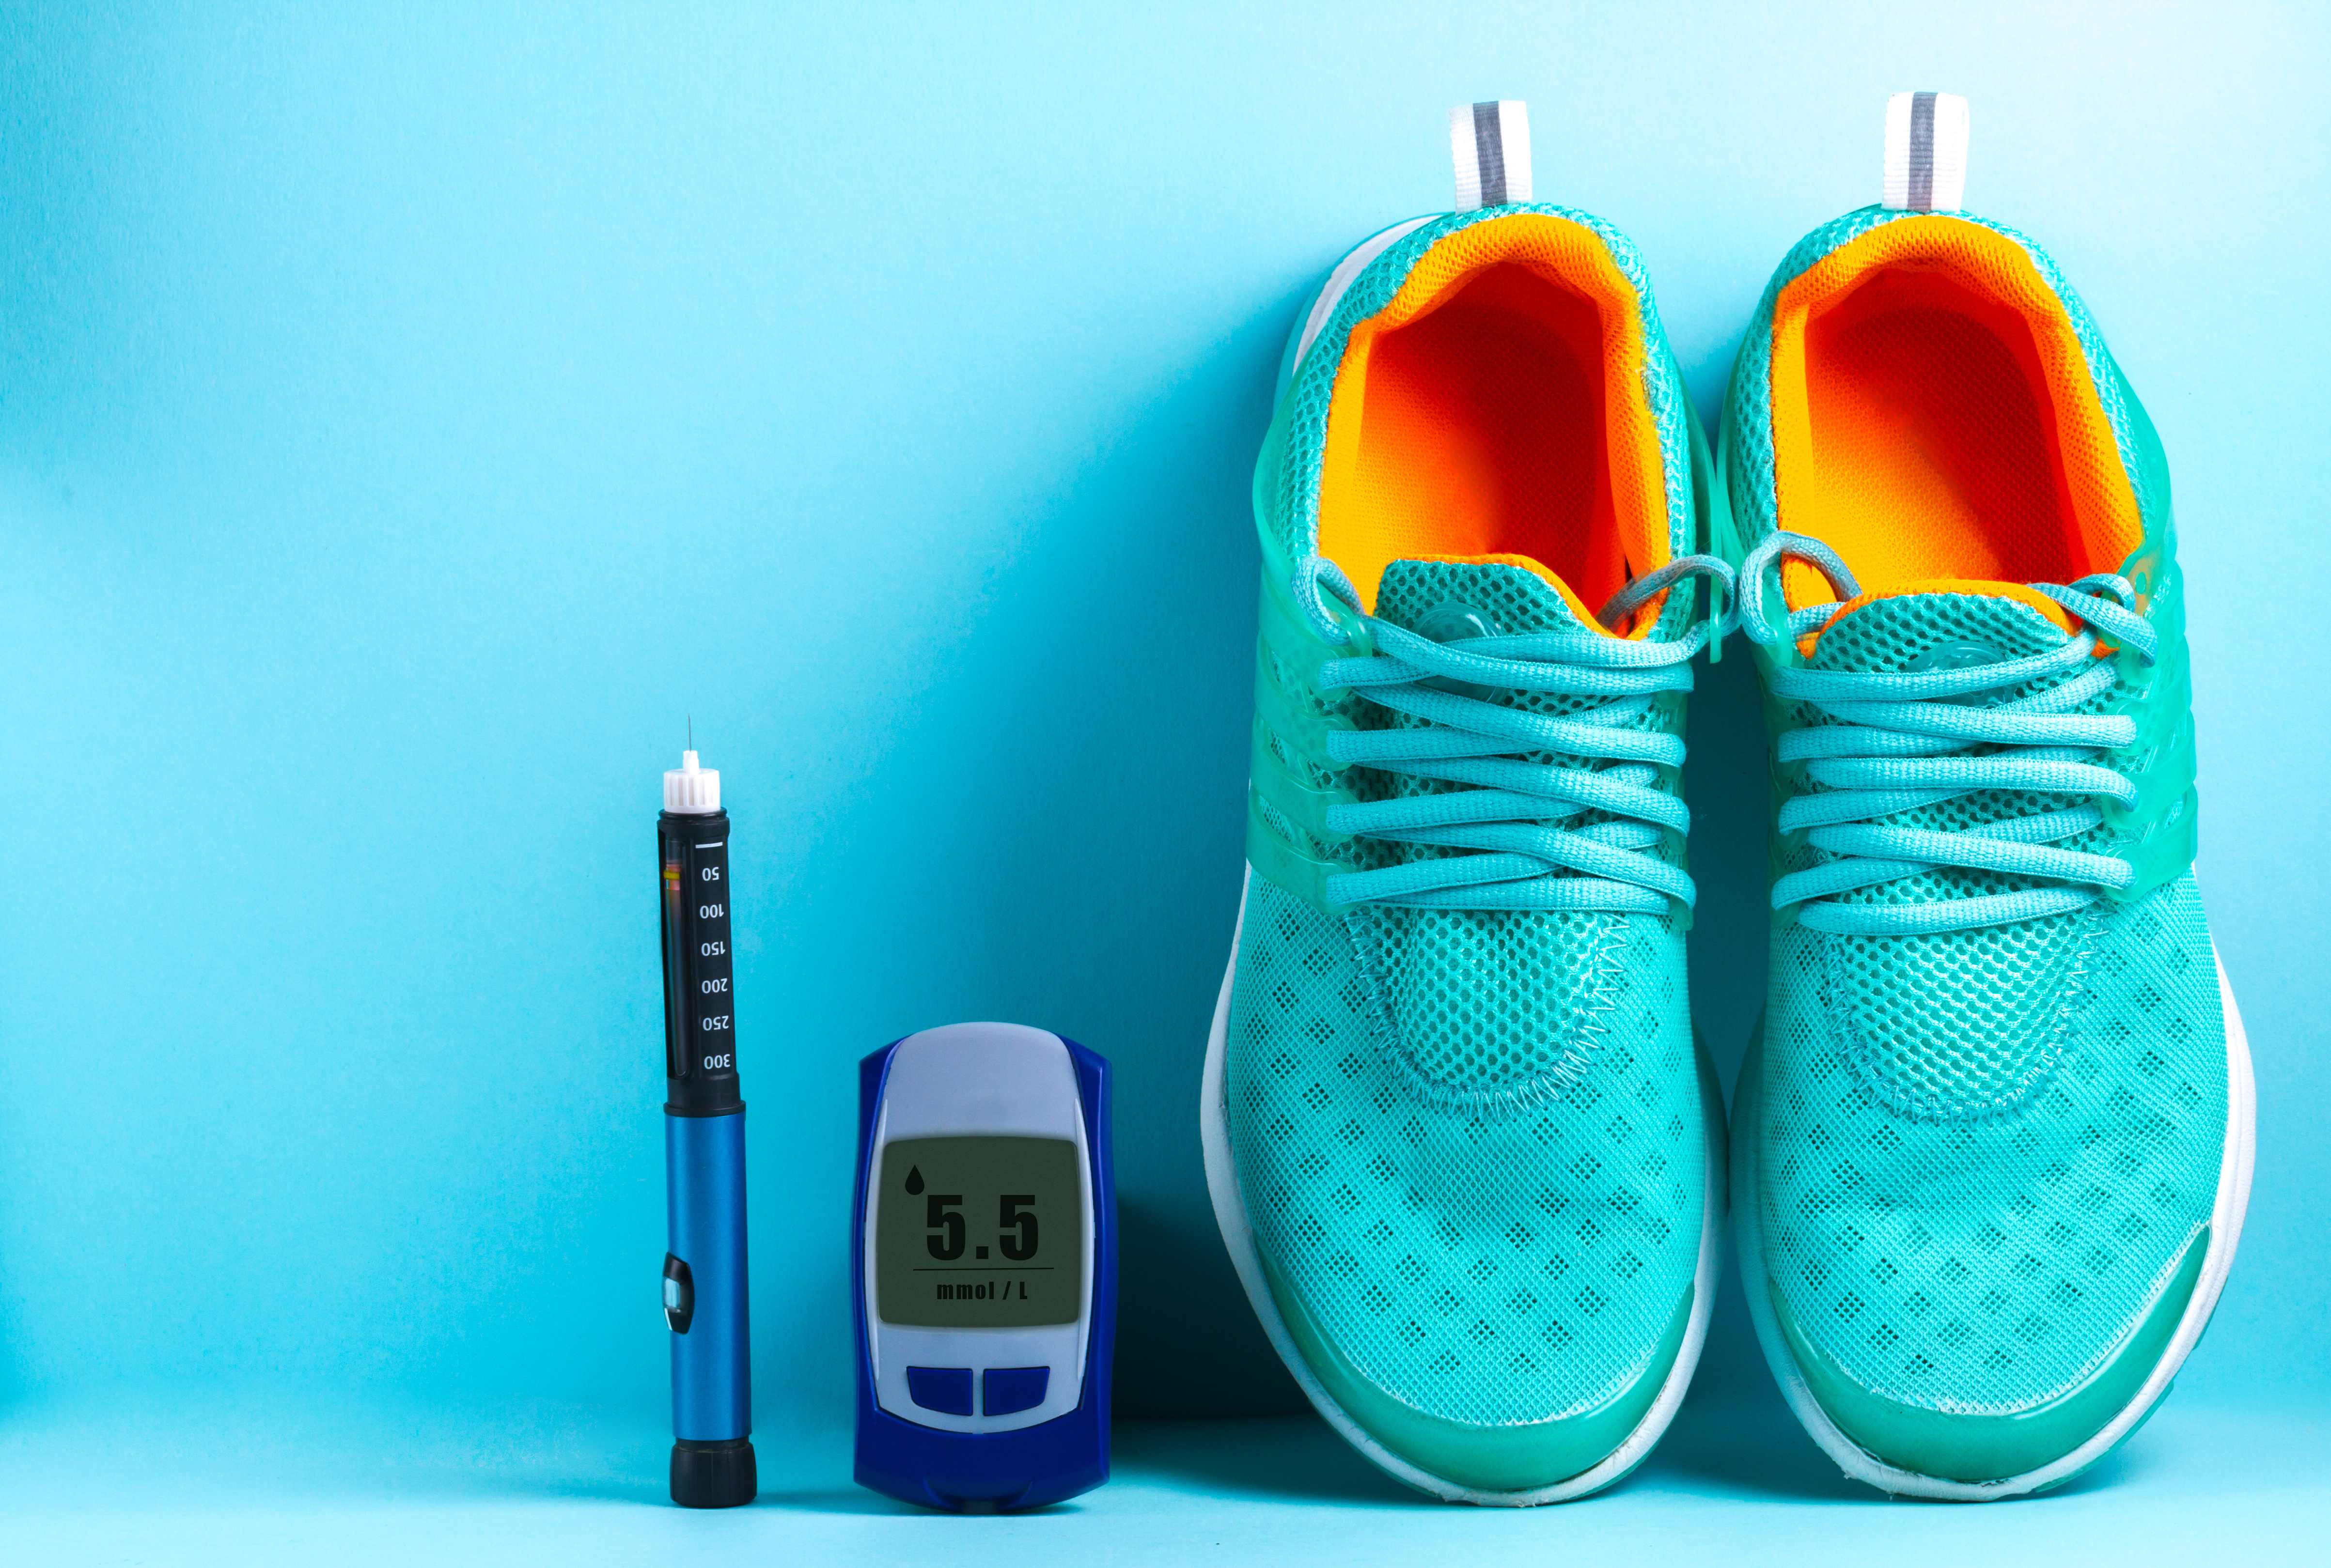 Hypoglycemia and physical activity: Update on insulin reduction to safely perform aerobic exercise